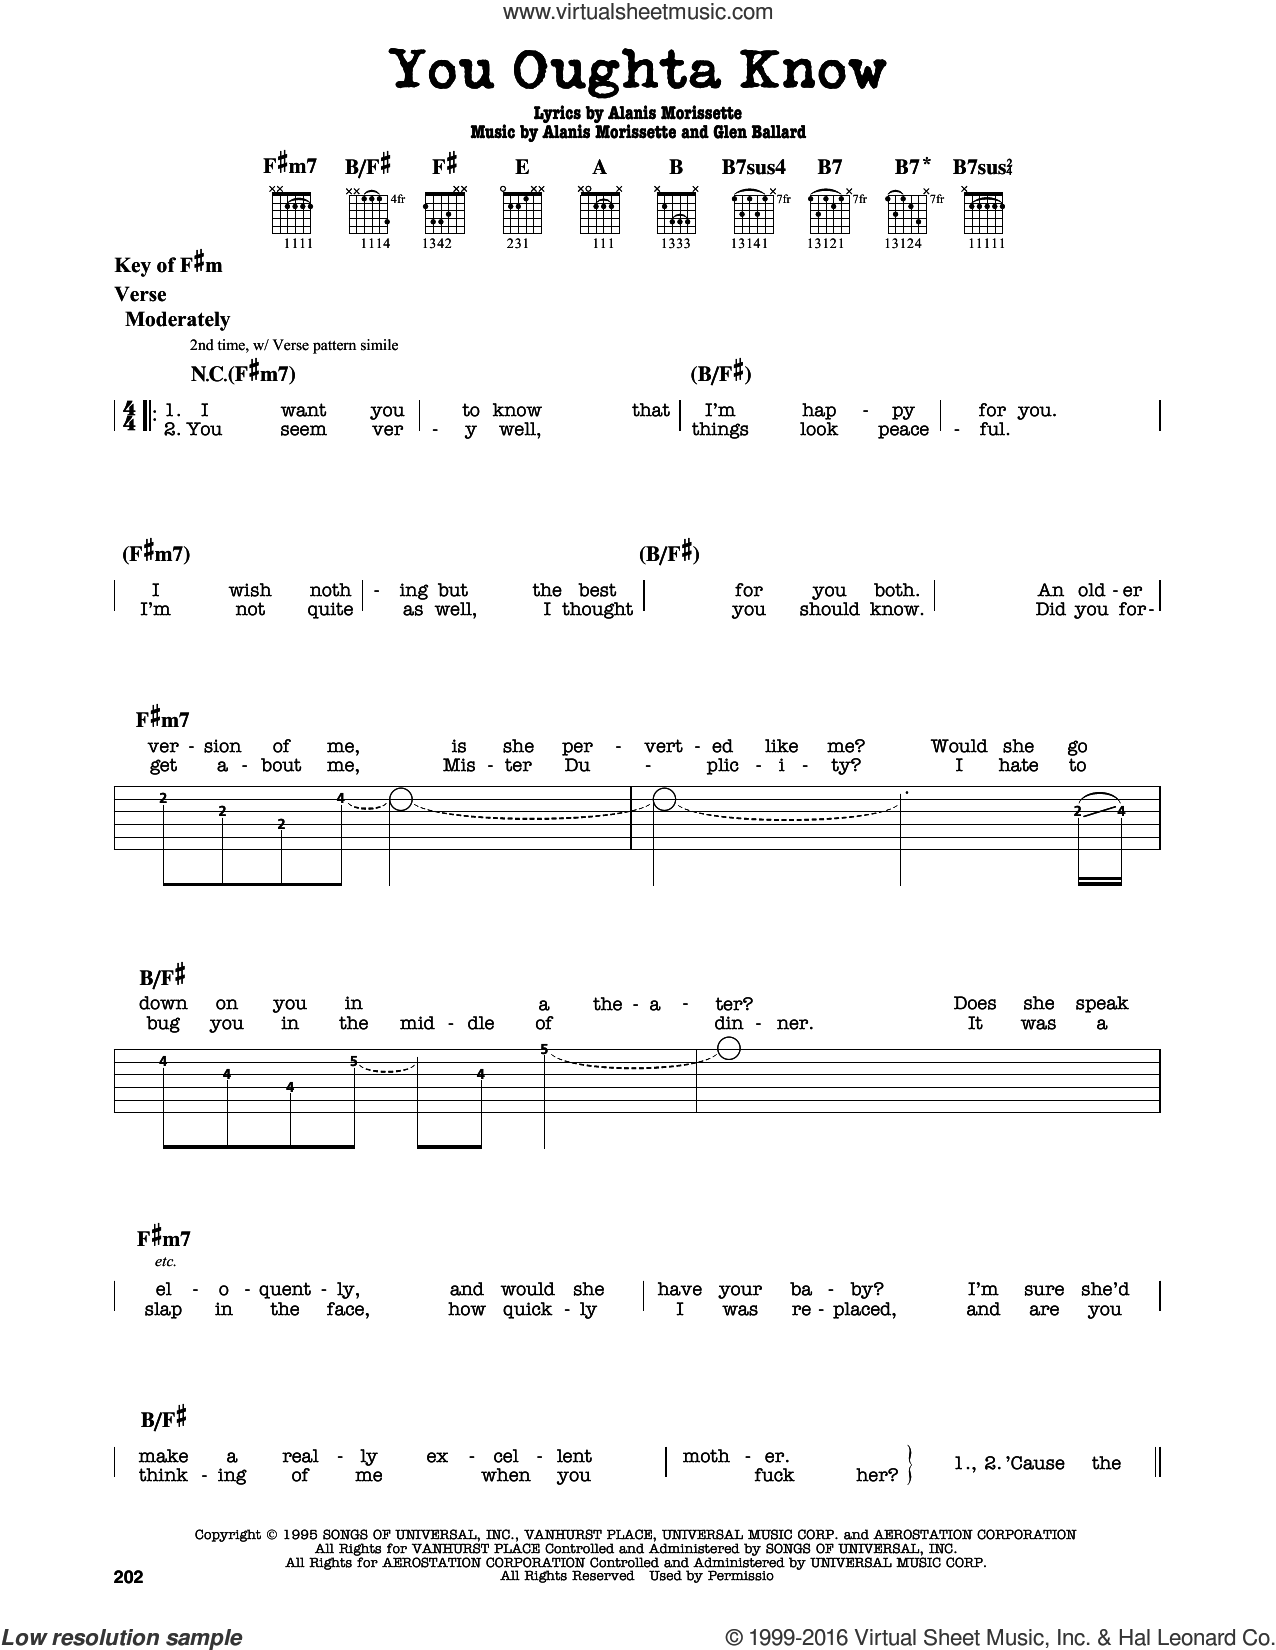 You Oughta Know sheet music for guitar solo (lead sheet) by Glen Ballard and Alanis Morissette. Score Image Preview.